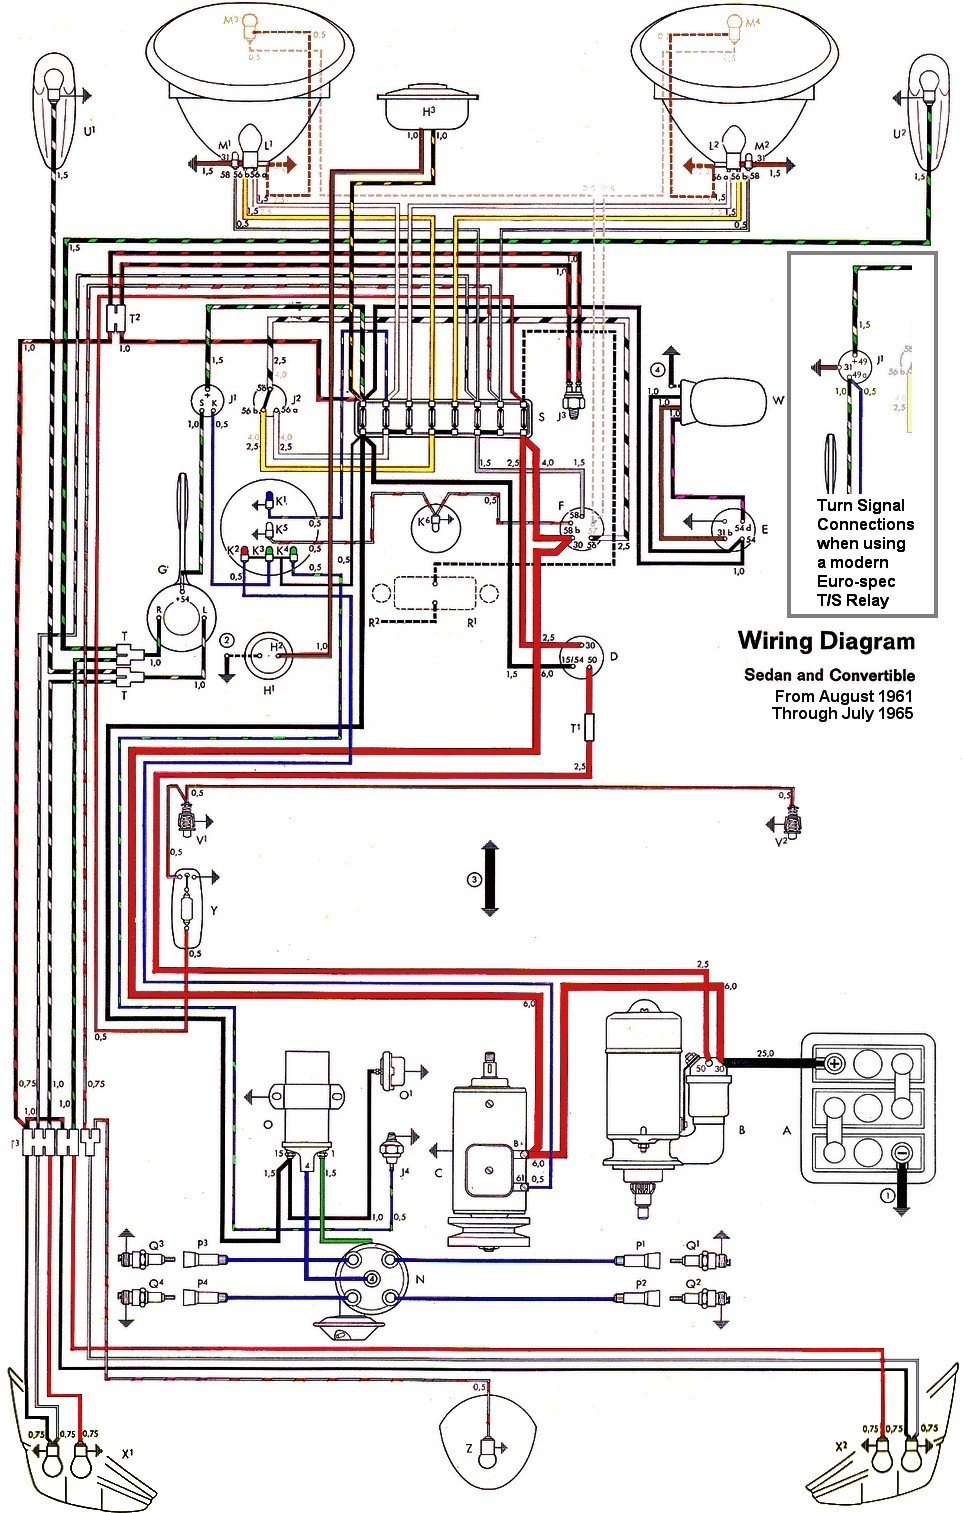 bug_62 65withinset wiring diagram vw beetle sedan and convertible 1961 1965 vw 1971 vw bus wiring diagram at beritabola.co